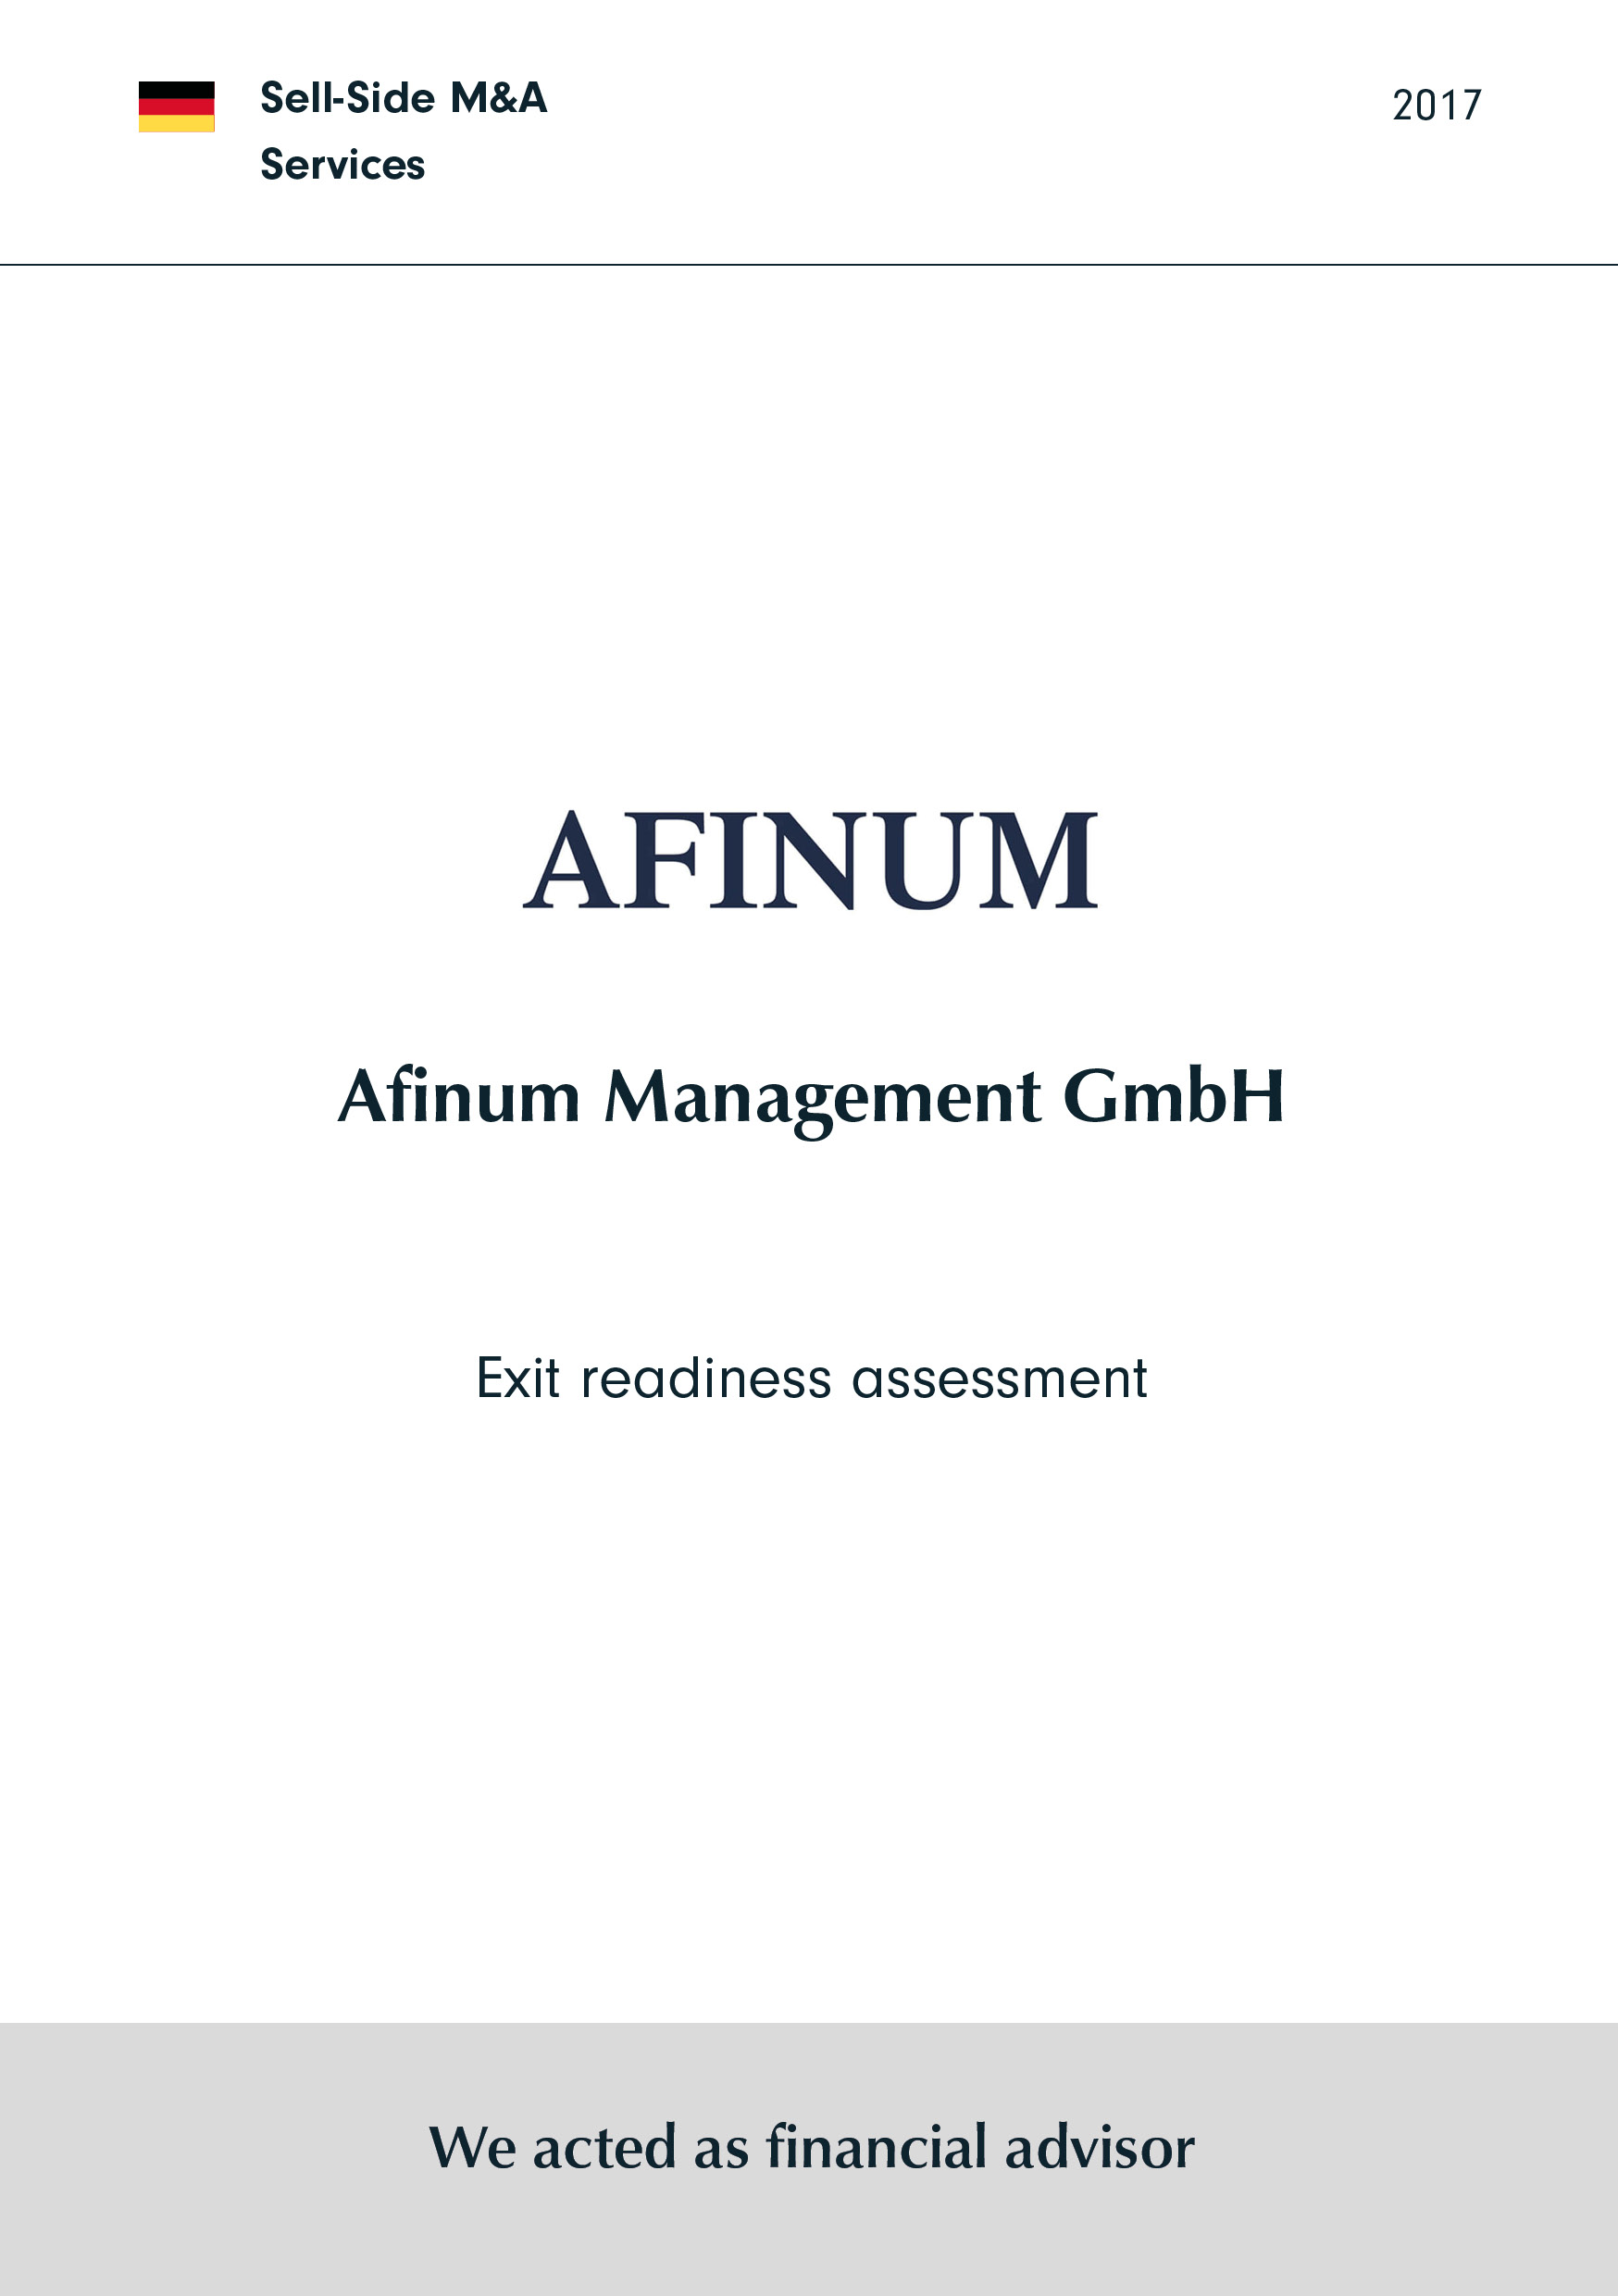 Afinum | Exit readiness assessment